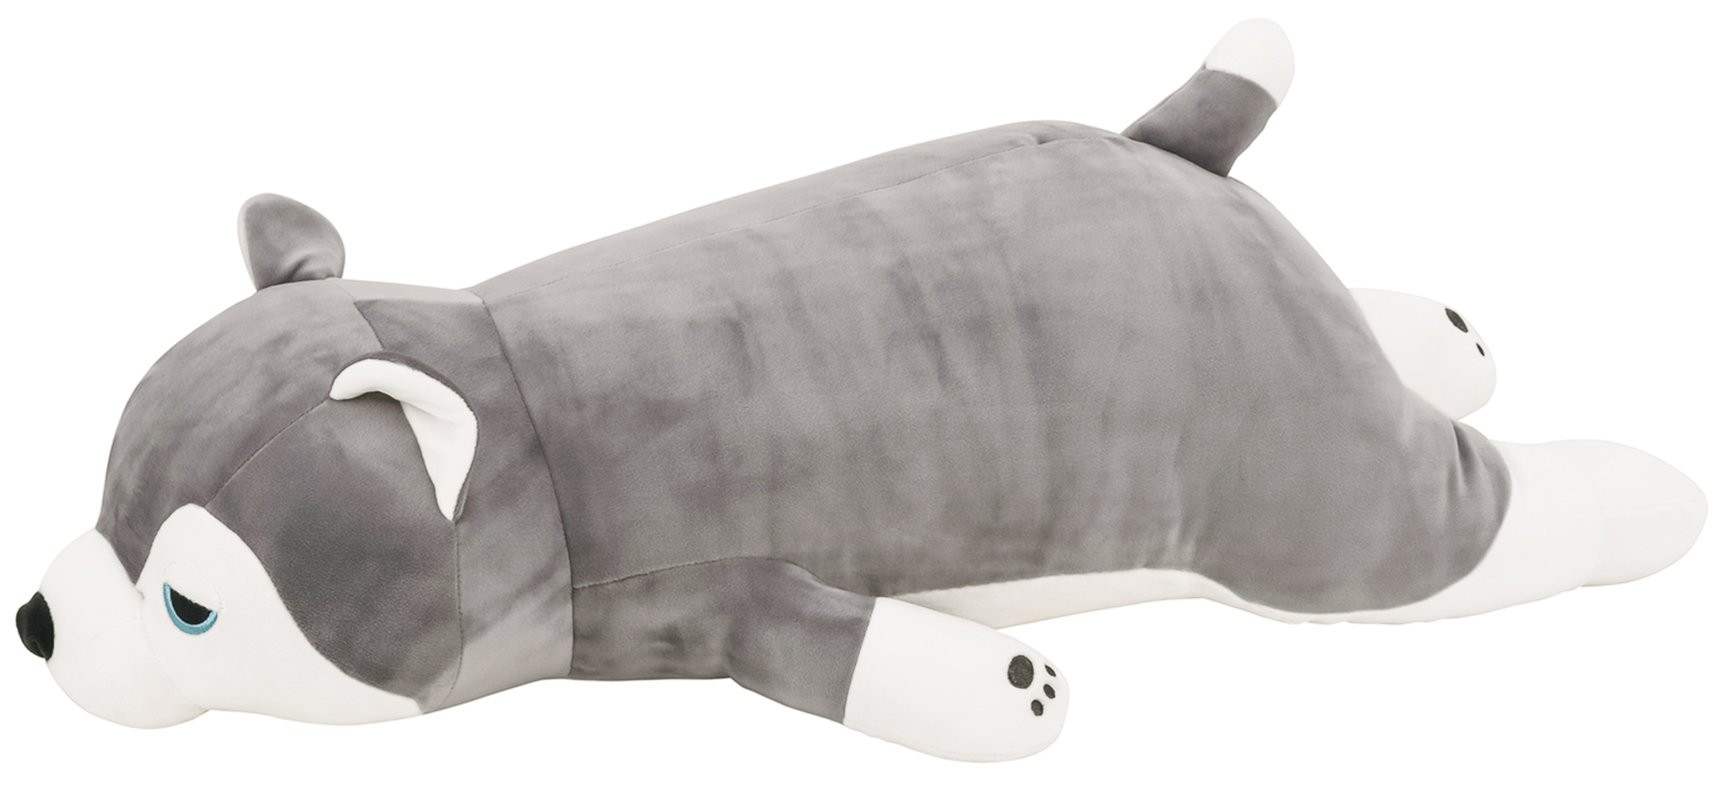 Comolife Cute Dog 'Husky' Plush Soft & Comfortable Body Pillow , Size : W23.79 x D12.48 x H7.8 Inch